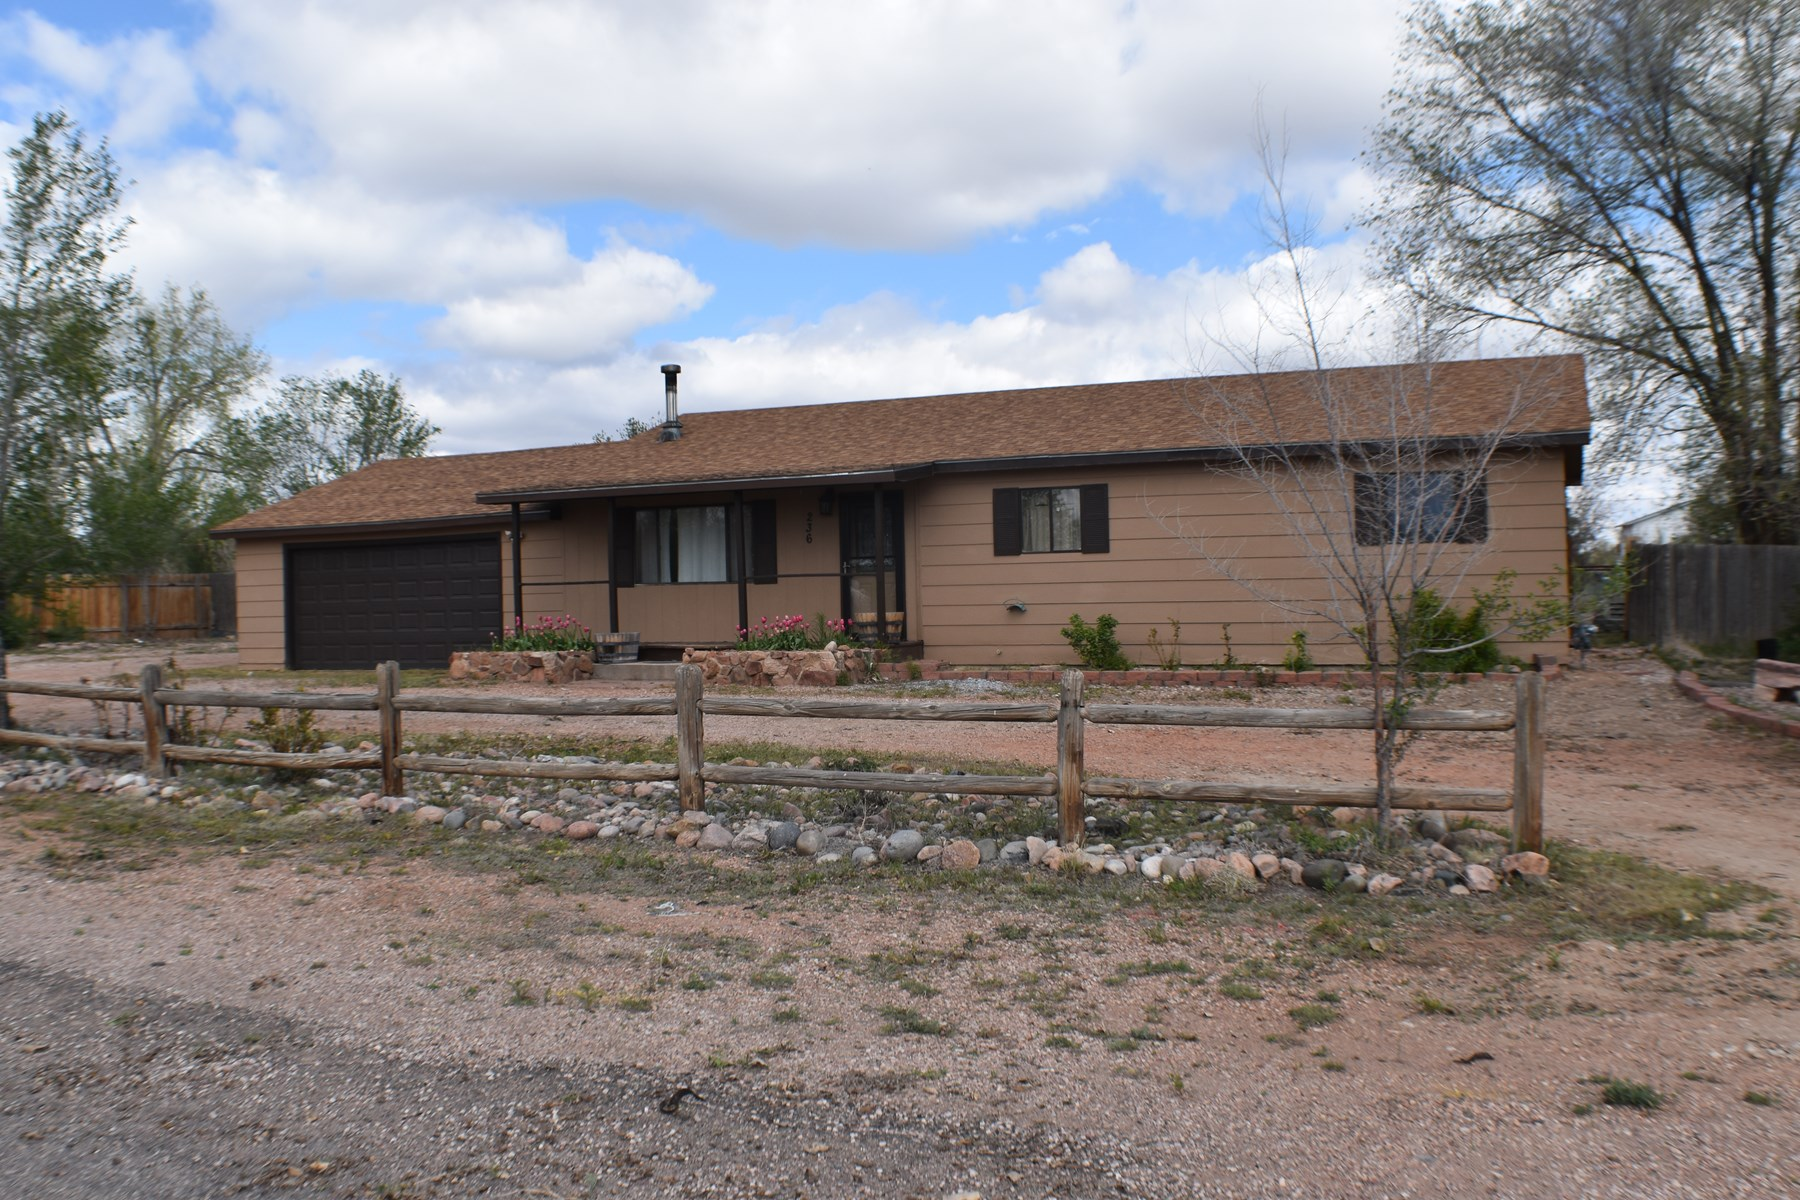 Home for Sale in Penrose, CO Ready for 4-H or Hobby farmers!